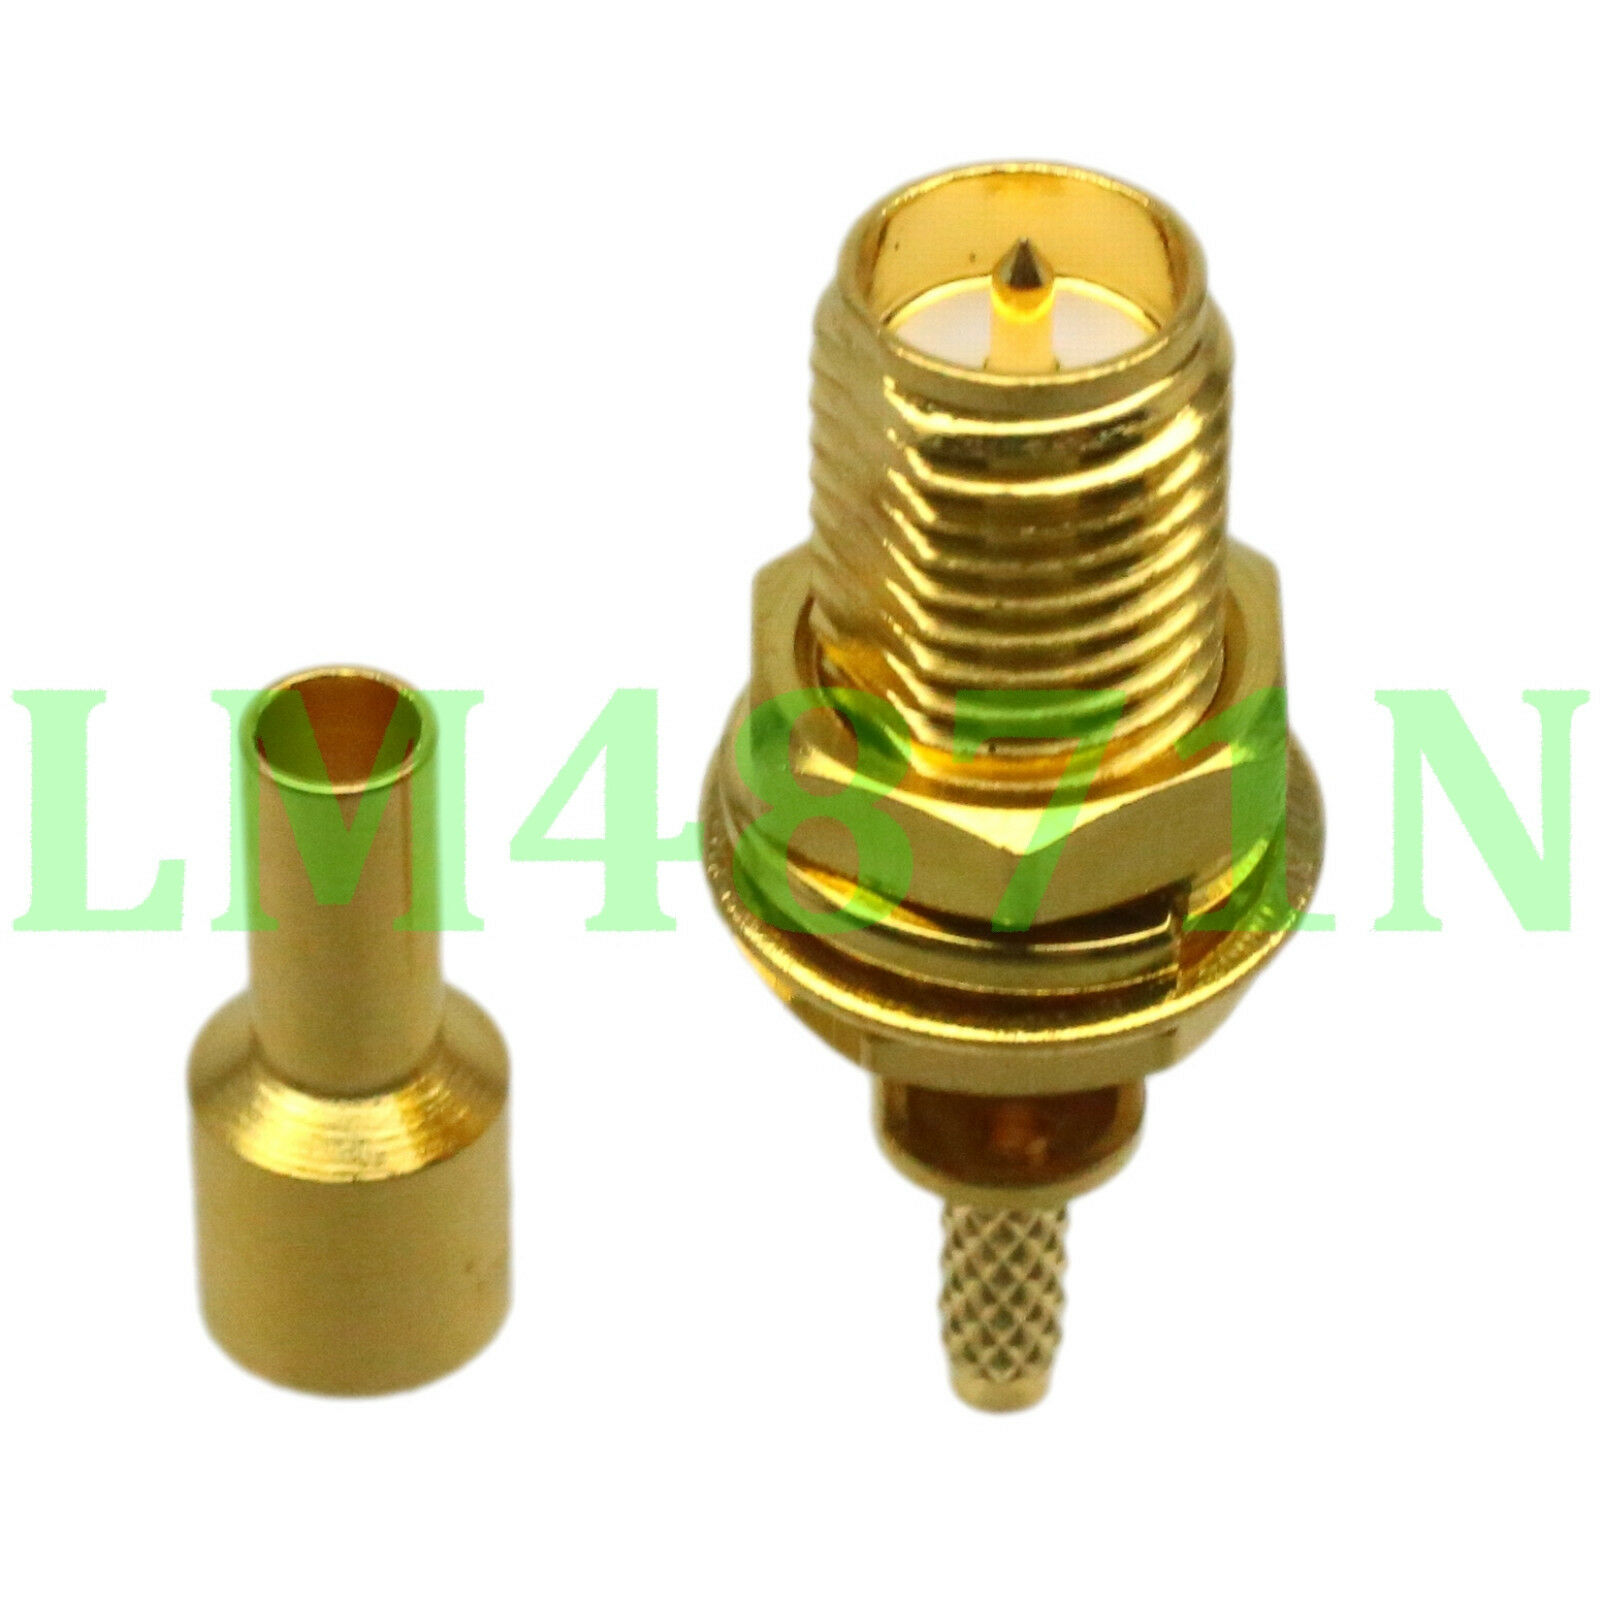 1x Connector Rpsma Female Plug Bulkhead Crimp Rg178 Rg196 Cable Kabel Pigtail Rp Sma To Ufl Coaxial Straight Window 1 Of 4 See More